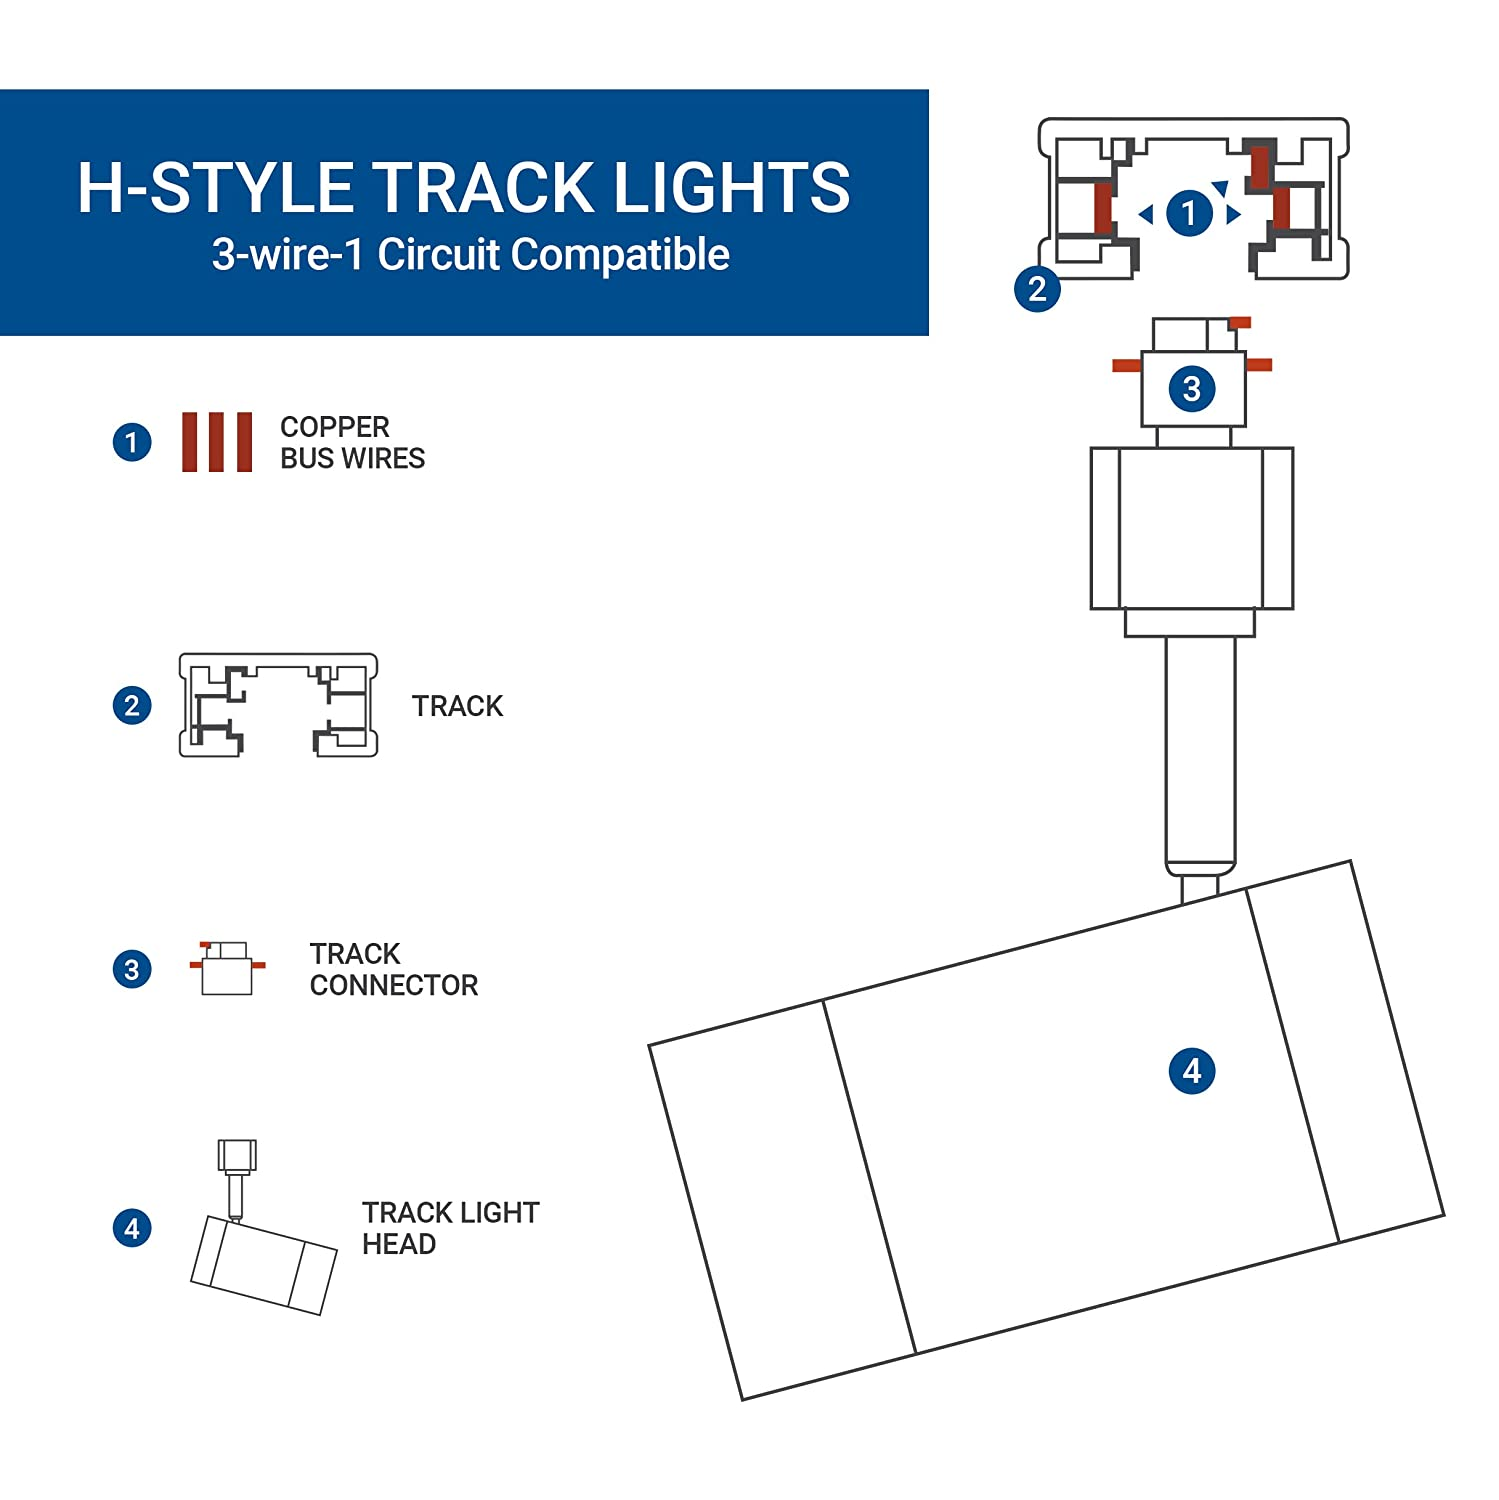 Wiring Diagram For Track Light - engineer wiring diagram on